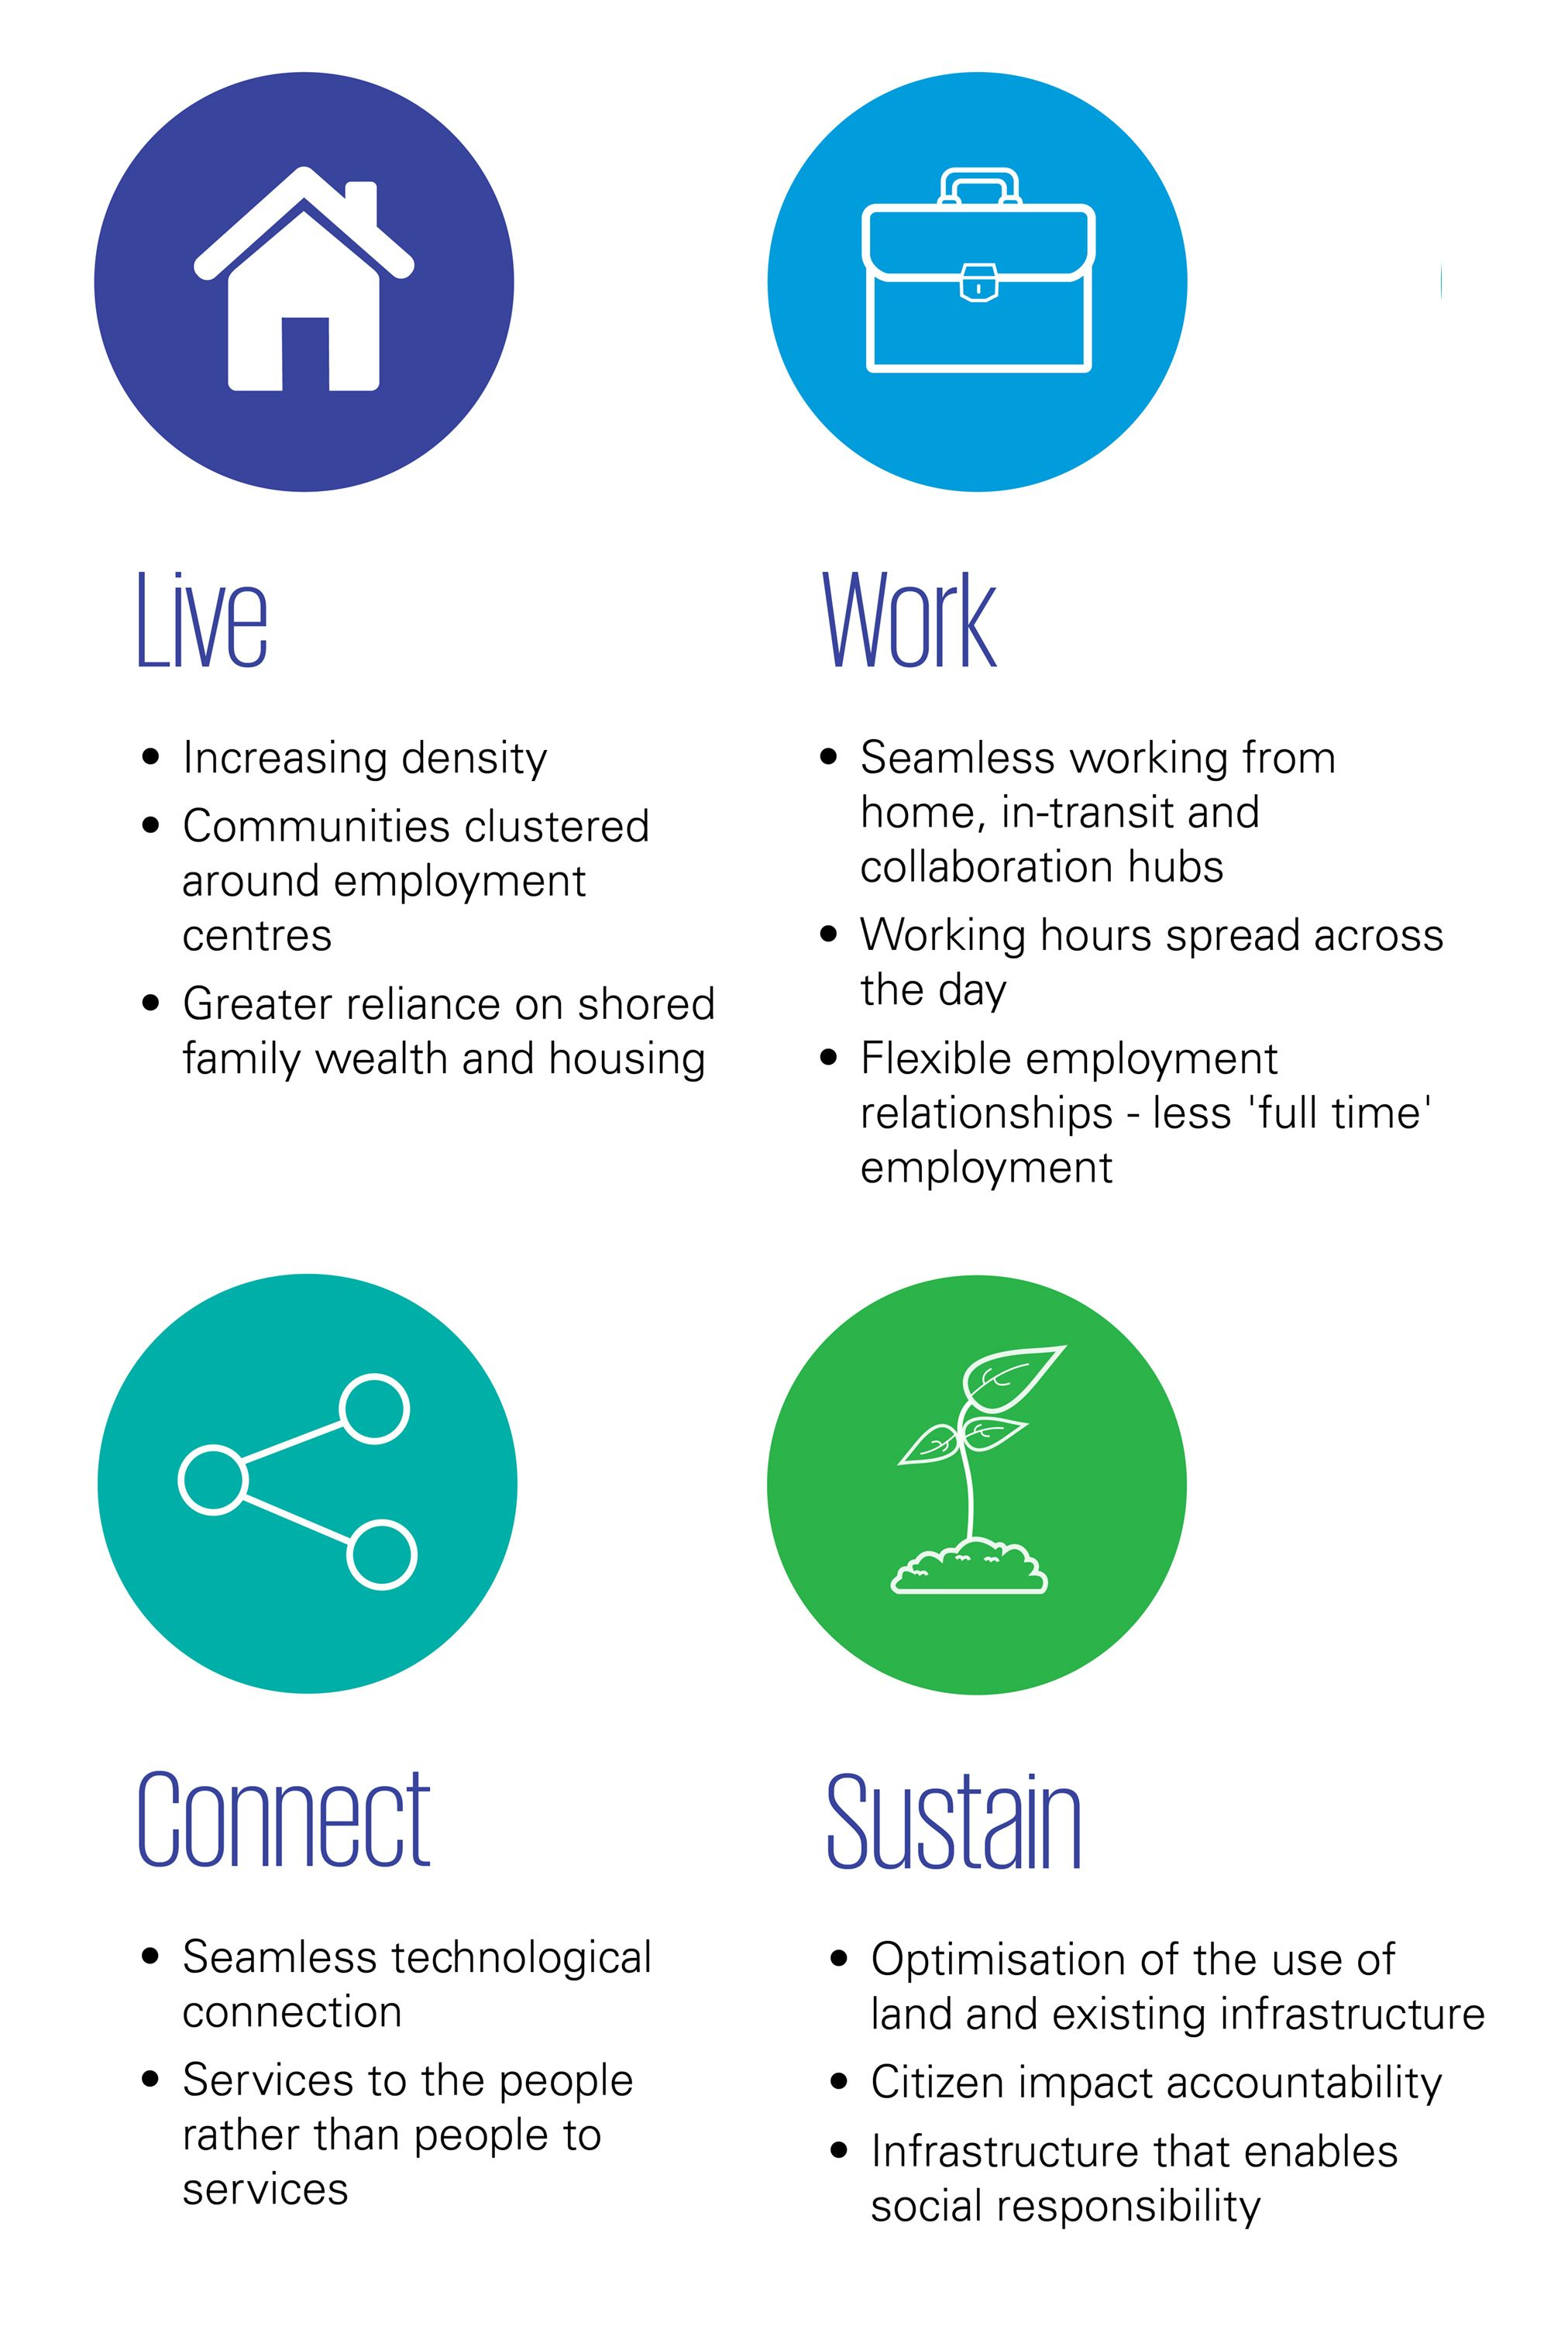 Rethinking infrastructure planning info-graphic – Live, Work, Connect, Sustain